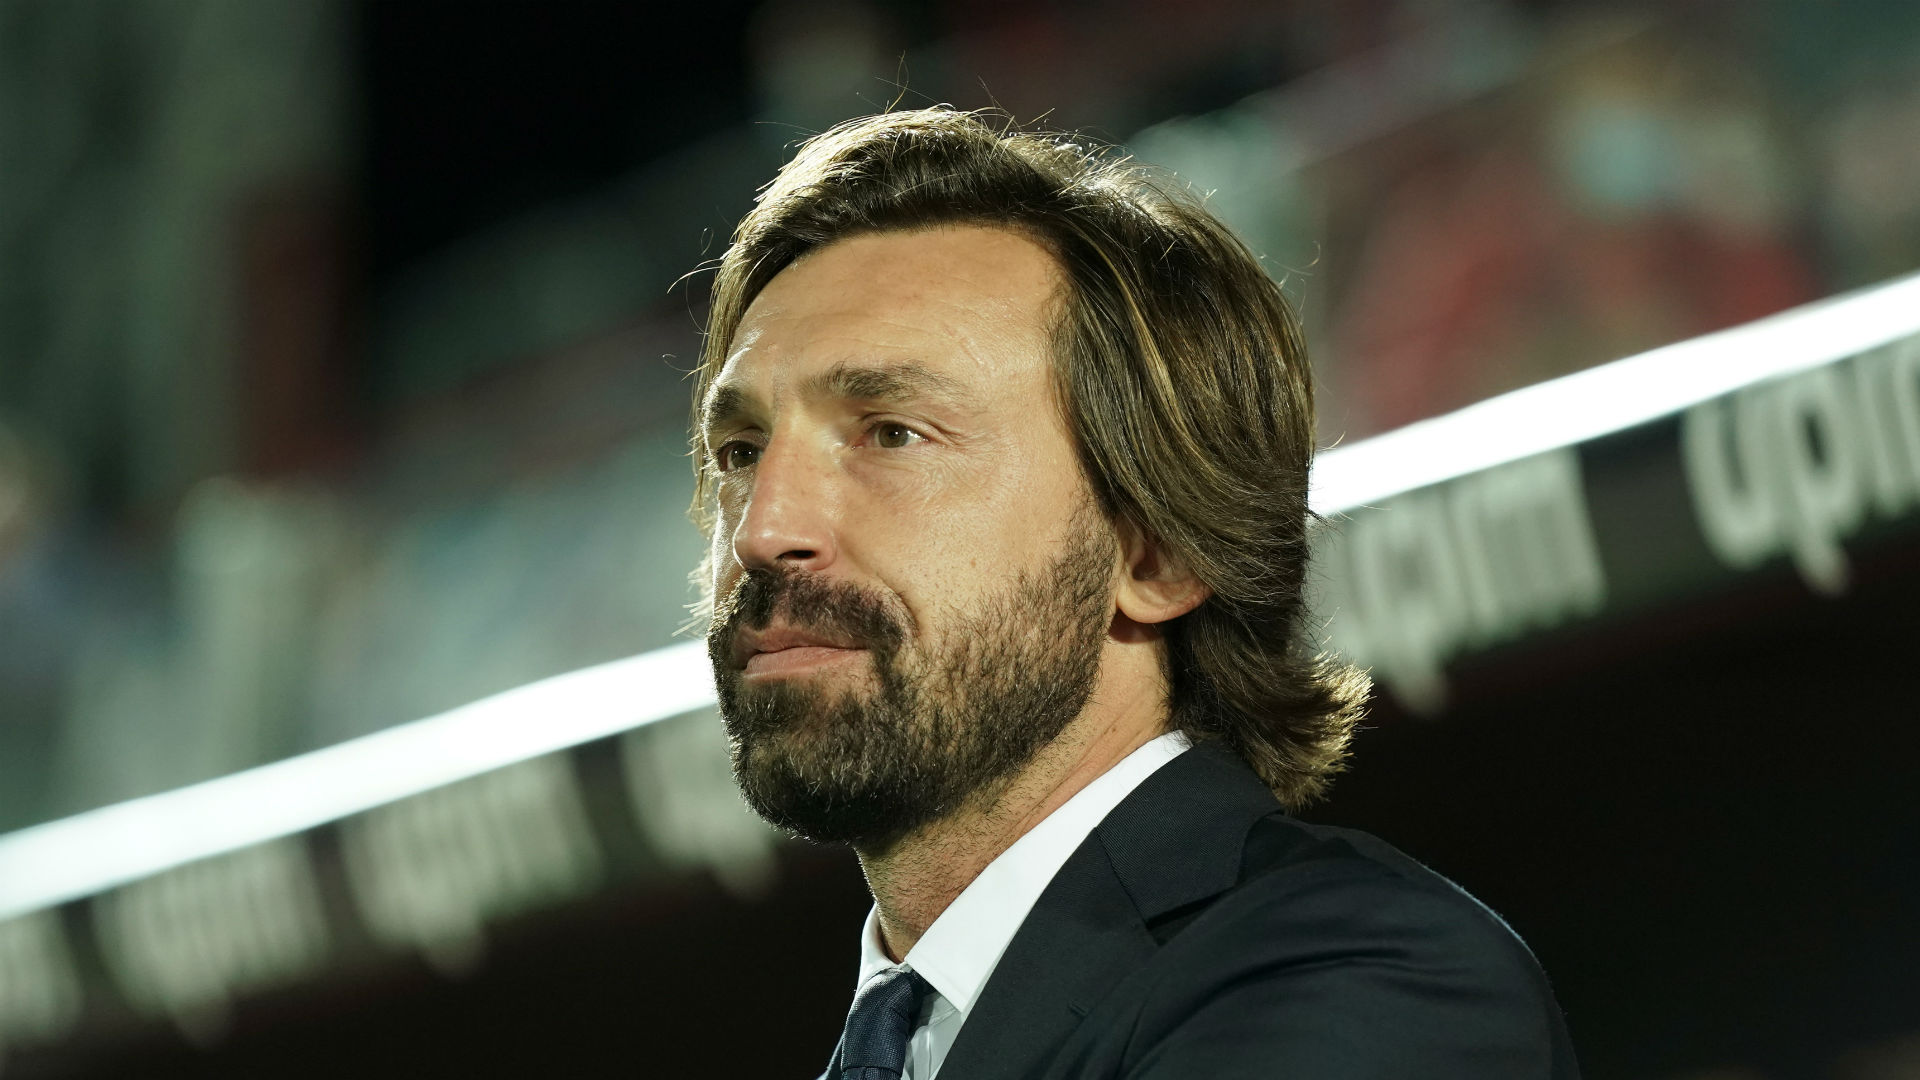 Pirlo describes Chiesa as 'naive' after red card on Juve debut